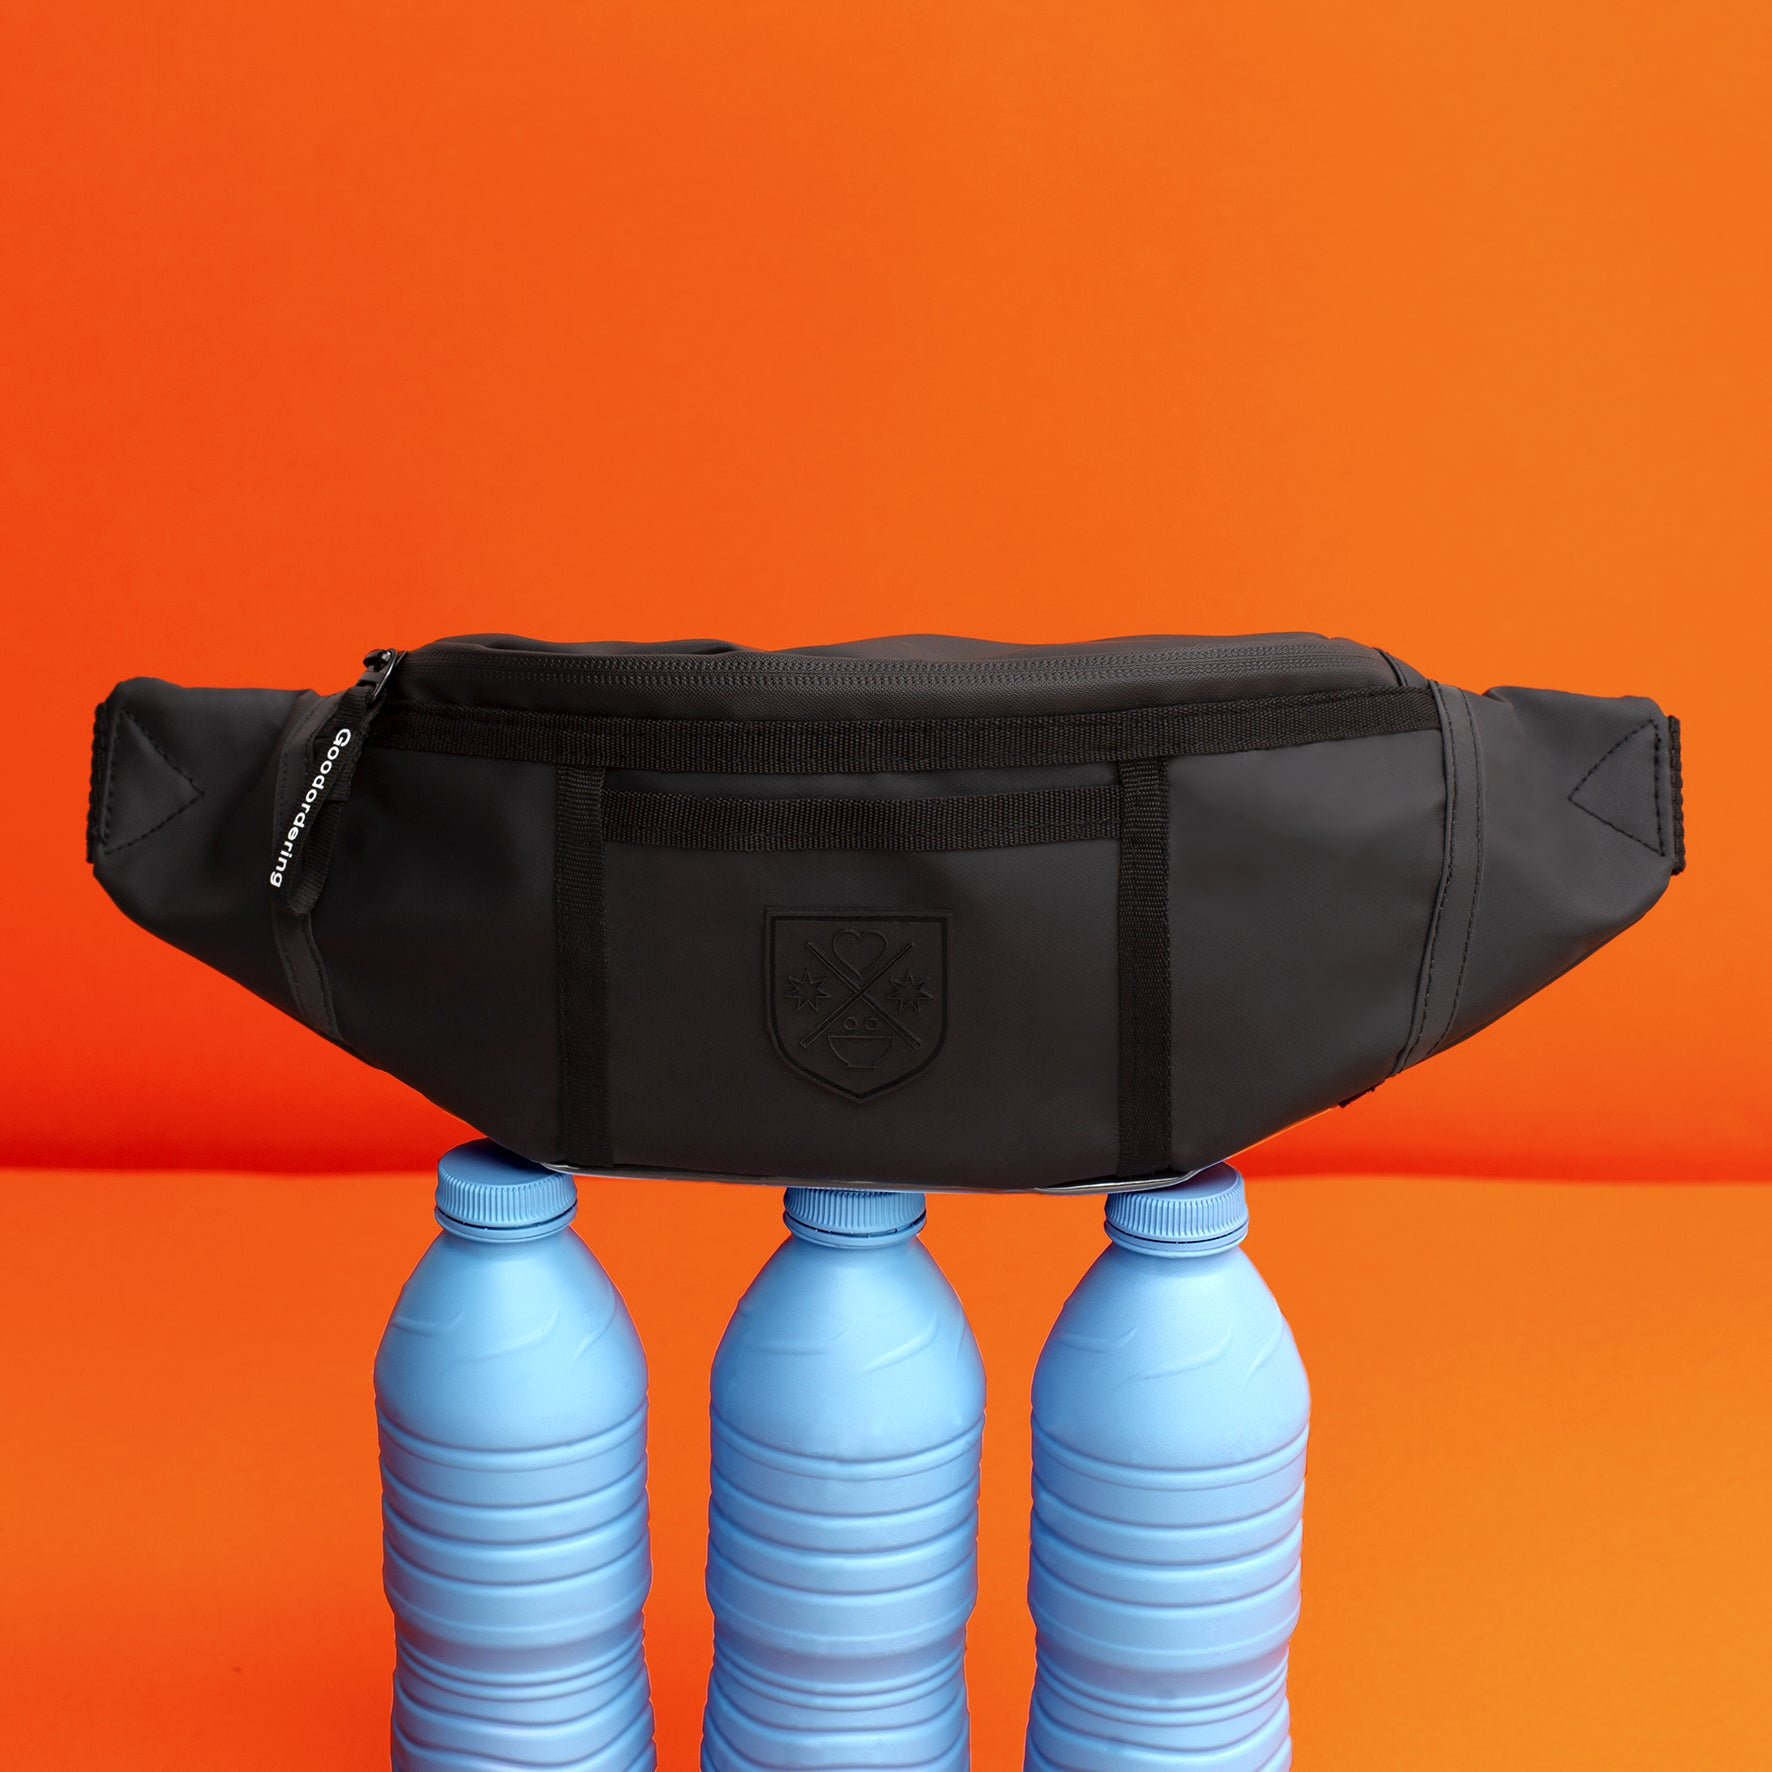 Goodordering bum bag made from recycled water bottles